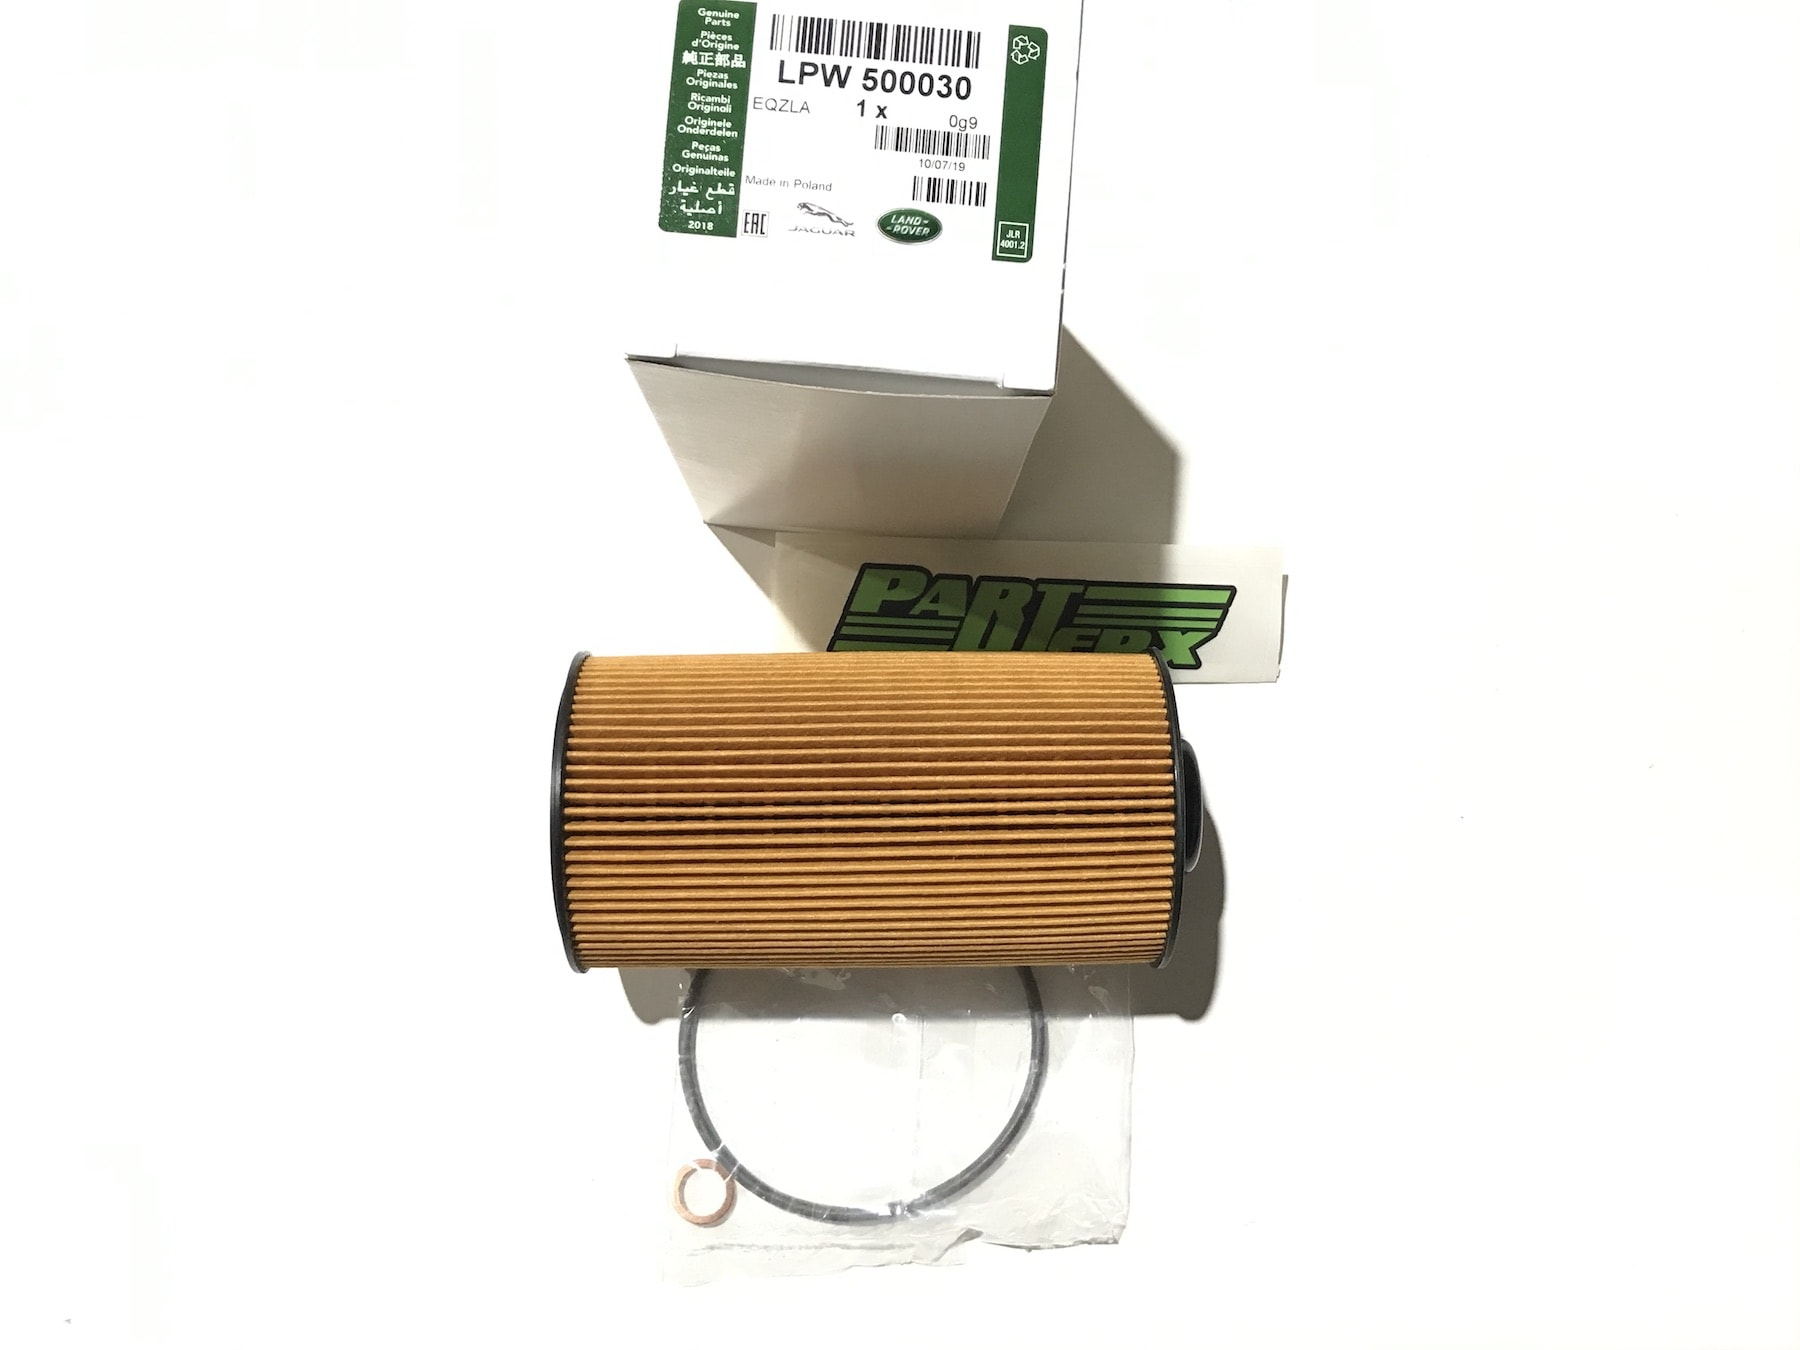 Land Rover Range Rover L322 4.4 V8 Engine Oil Filter Vogue Autobiography Genuine OEM LR Part